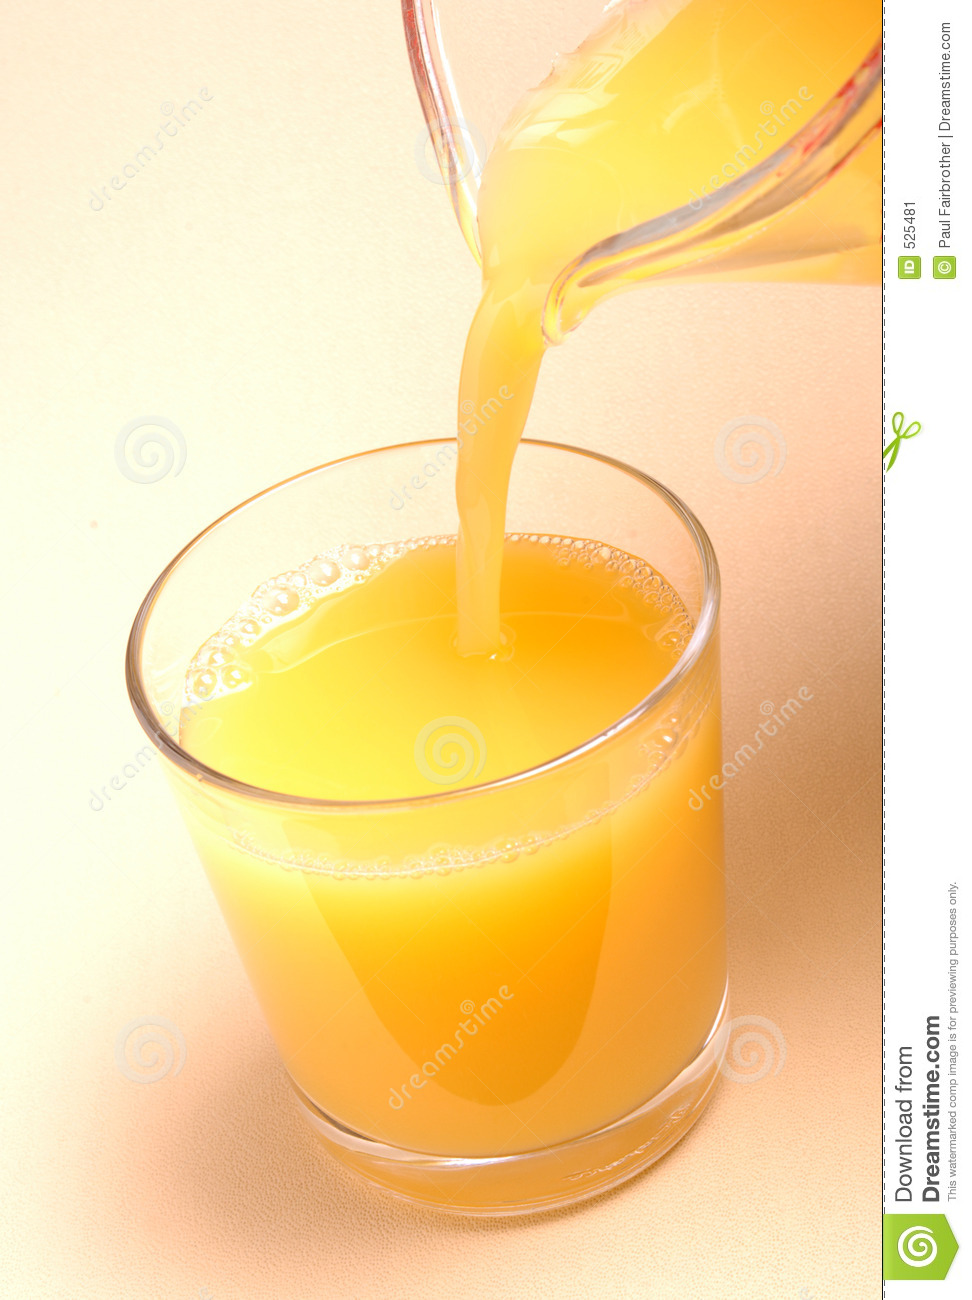 Beverage besides 298222806548836758 further 18 Deliciously Simple Mocktails likewise Brunch Mimosa Drink Recipe By The Pitcher moreover Minute Maids New Look. on orange juice pitcher